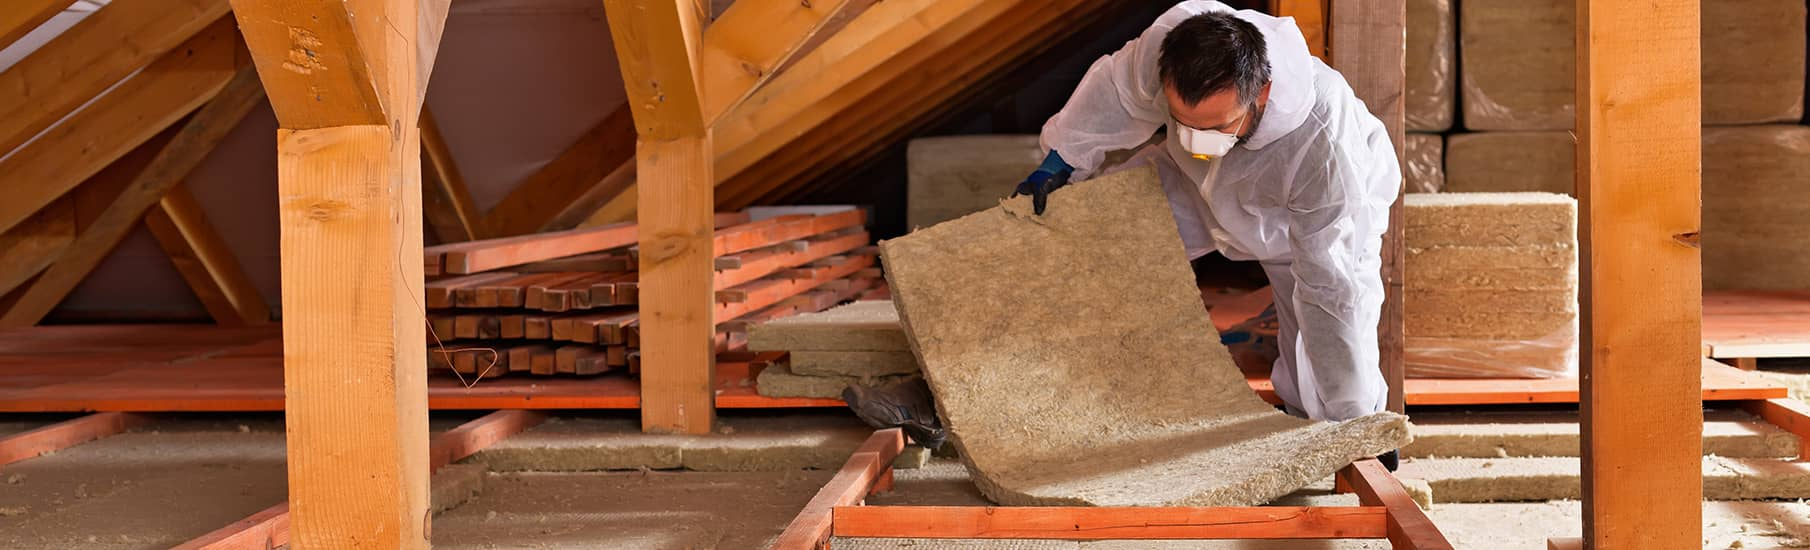 How loft insulation helps reduce heat loss